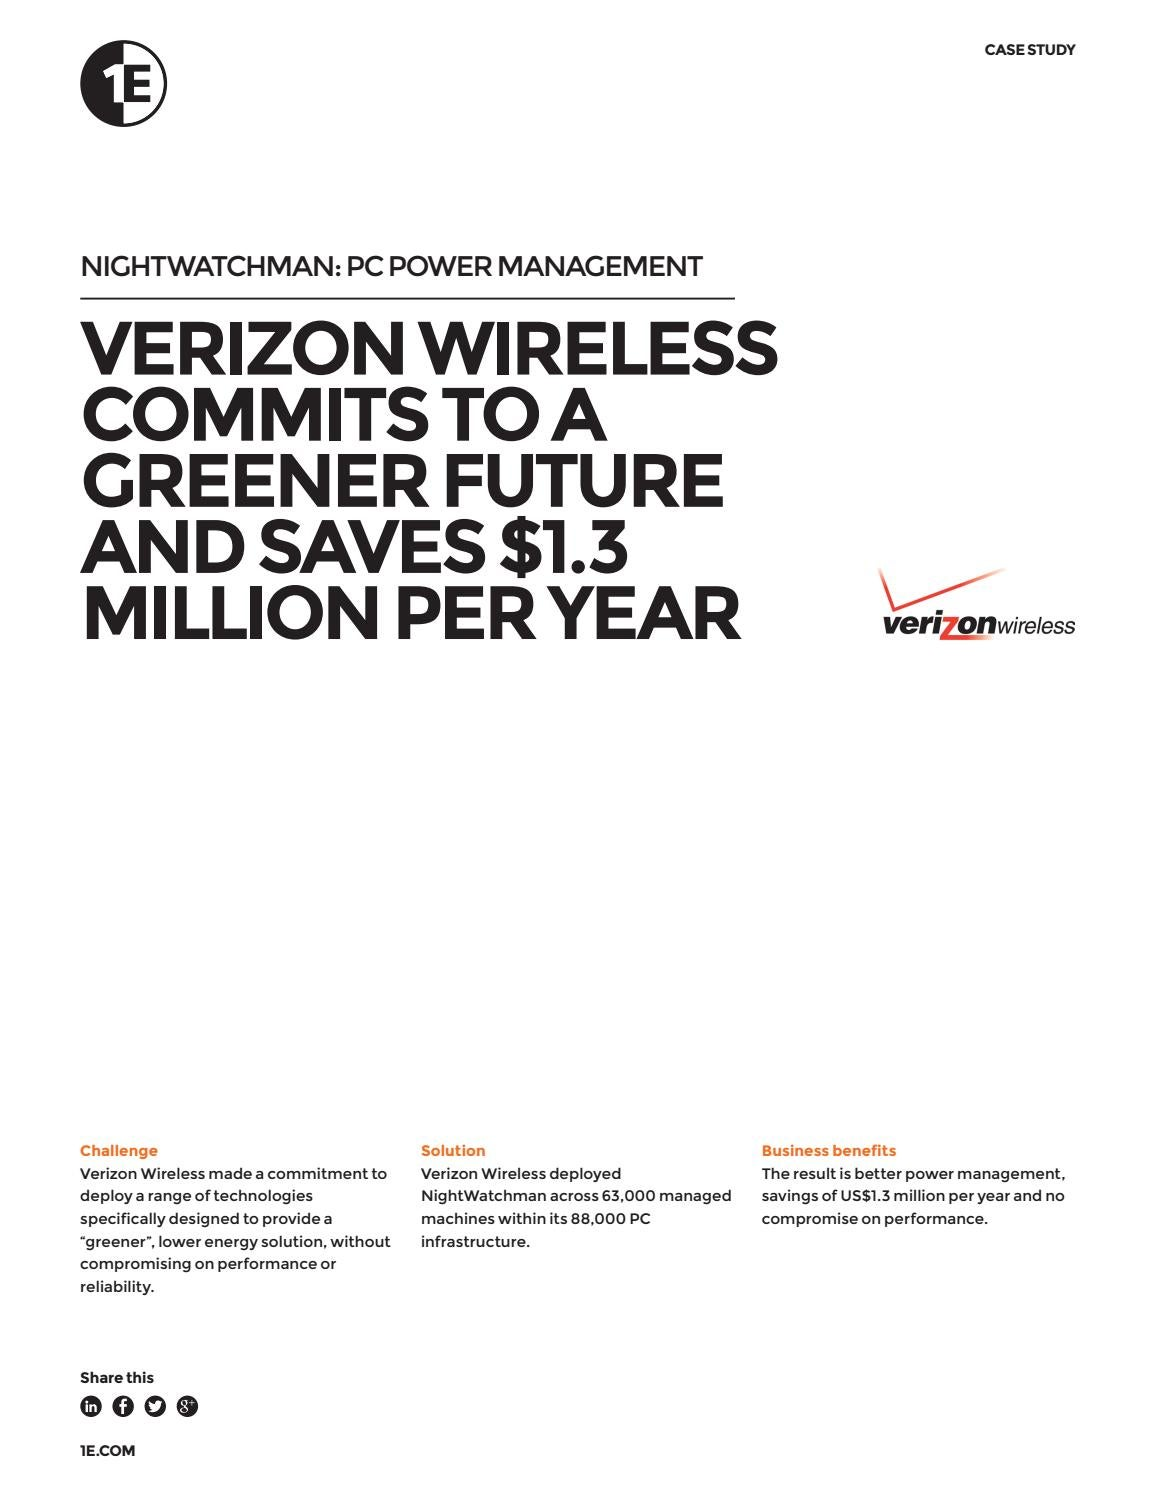 verizon wireless benefits